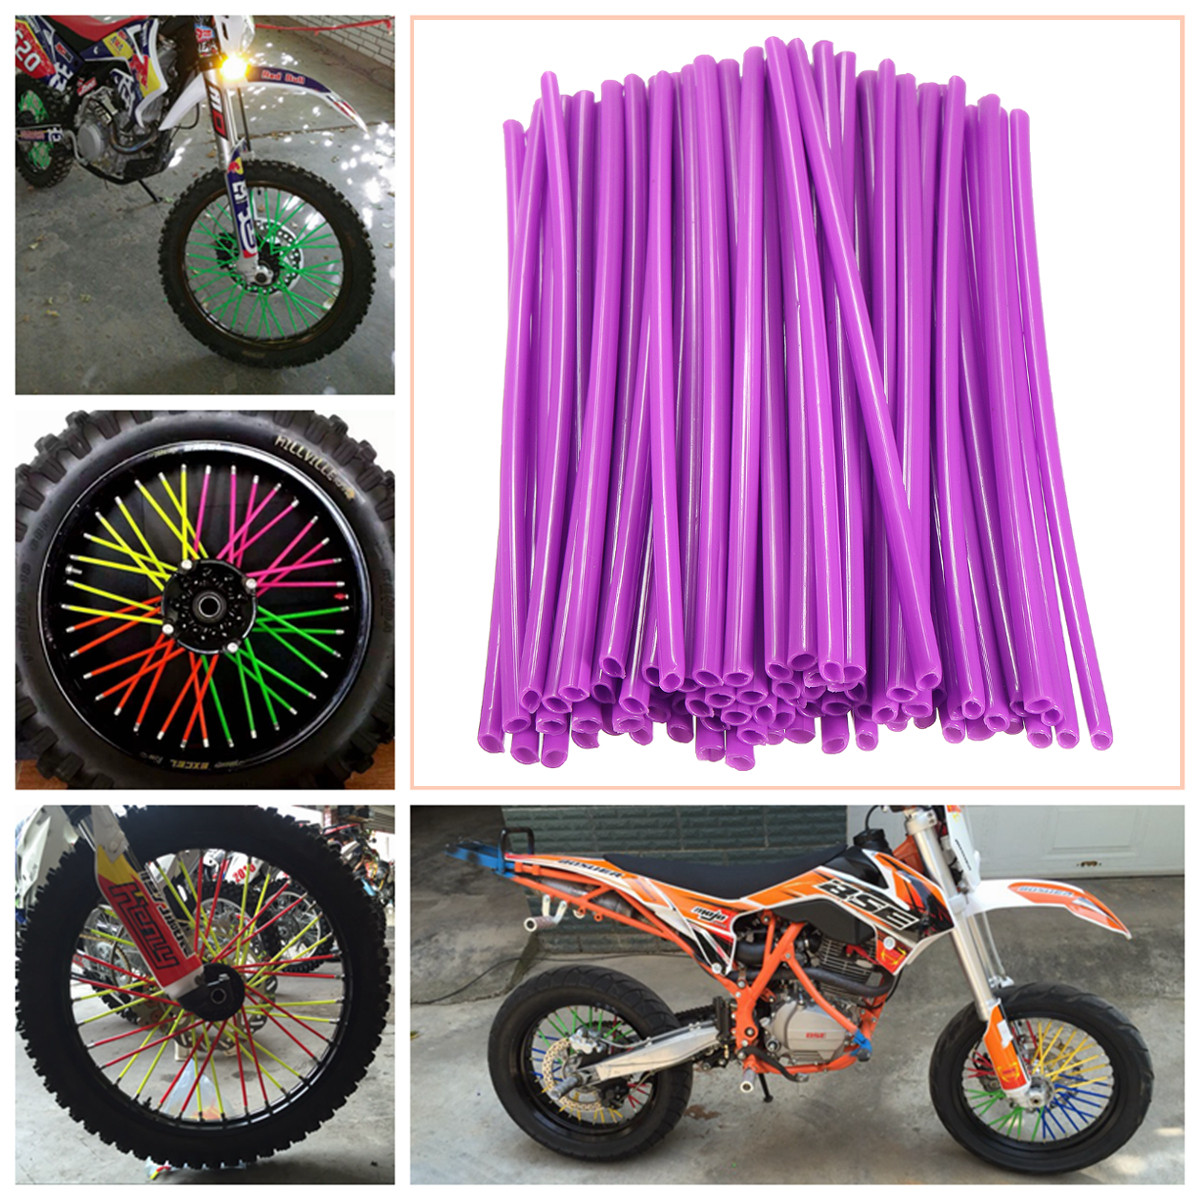 Wheel Spoked Wraps Skins Universal Trim Cover Pipe For KTM SX SXF XC Motocross Pit Dirt Bike